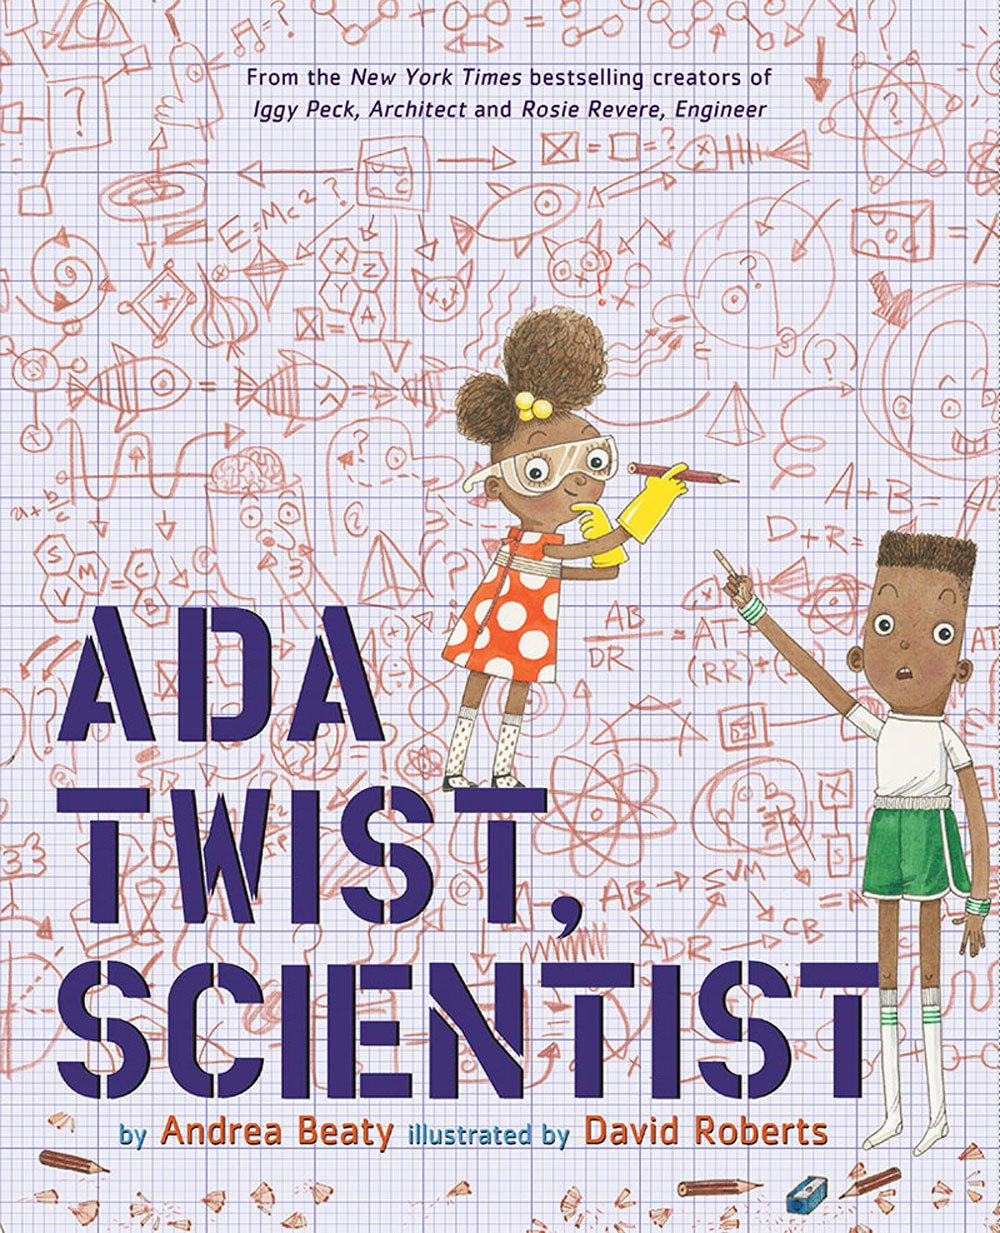 Ada Twist, Scientist, Andrea Beaty & David Roberts - Ada didn't speak until she was three but when she did she didn't stop asking questions. There's a pungent aroma filling her house and Ada goes on a fact-finding mission to figure out where it's coming from. This book is wonderful for little one's who enjoy stories about passion, drive, and ambition.